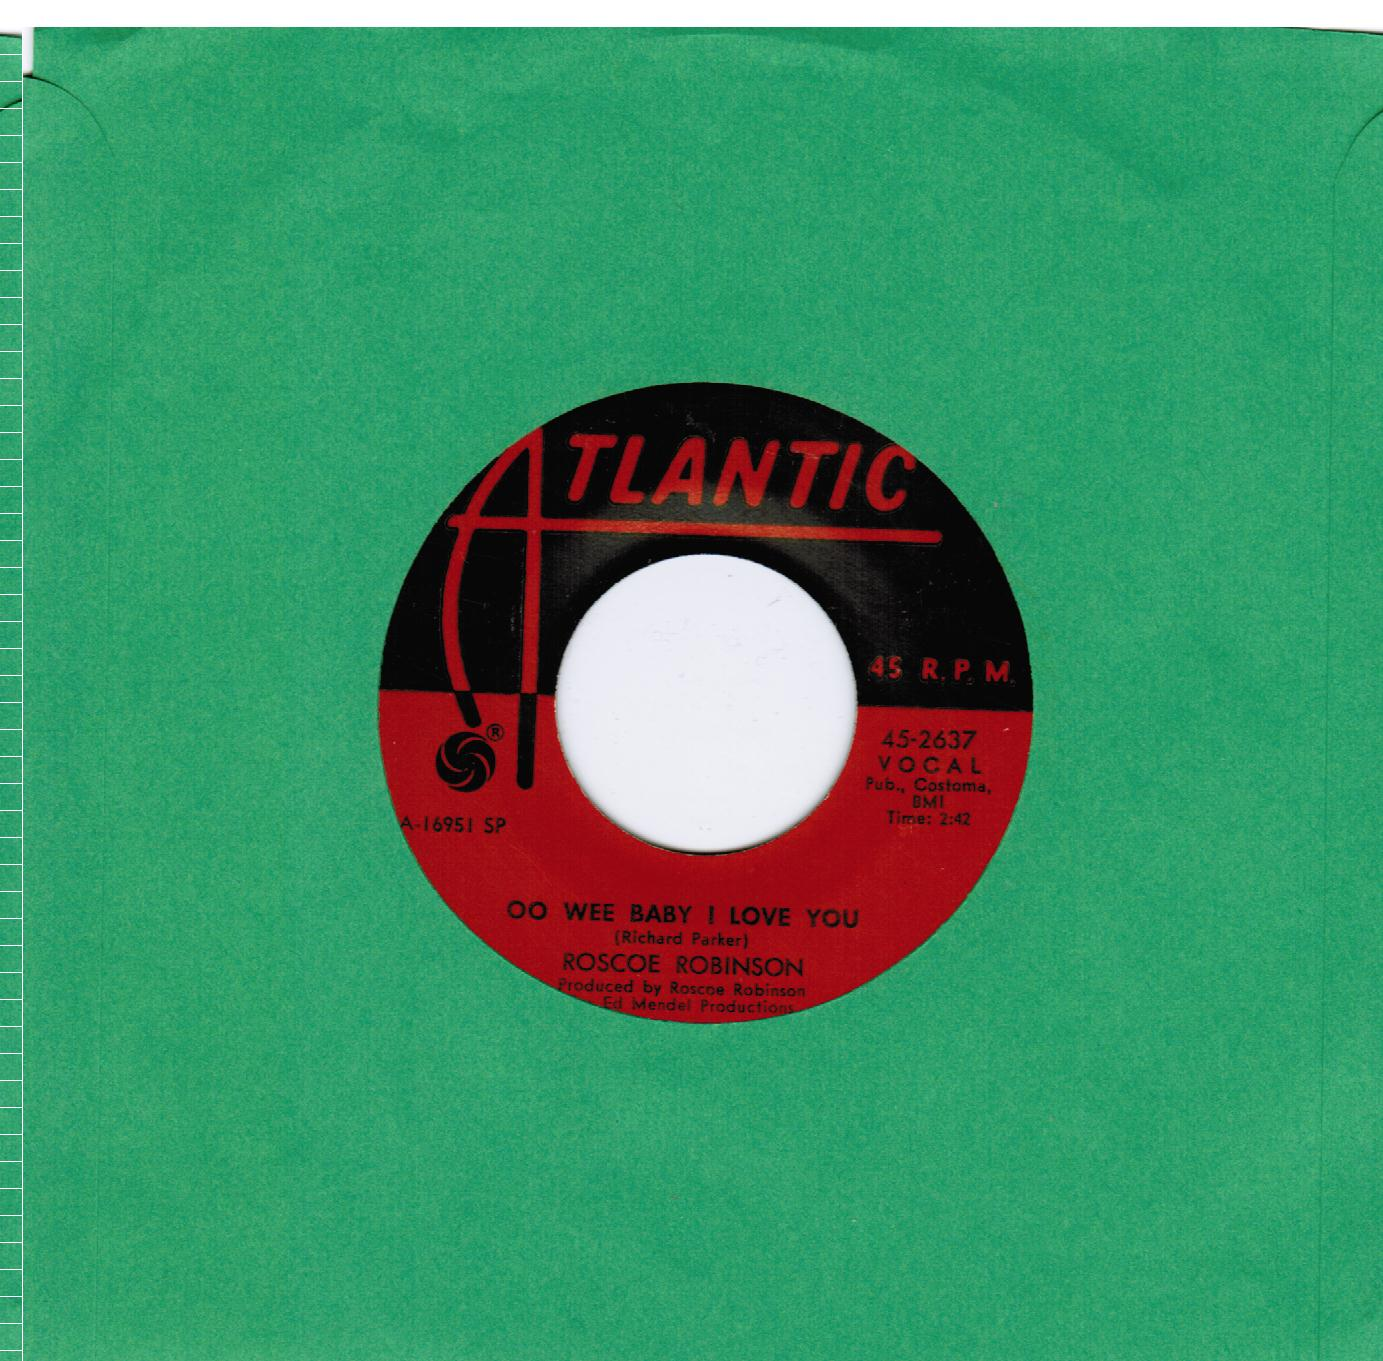 Roscoe Robinson   Oo Wee Baby I Love You / Leave You In The Arms Of Your Other Man